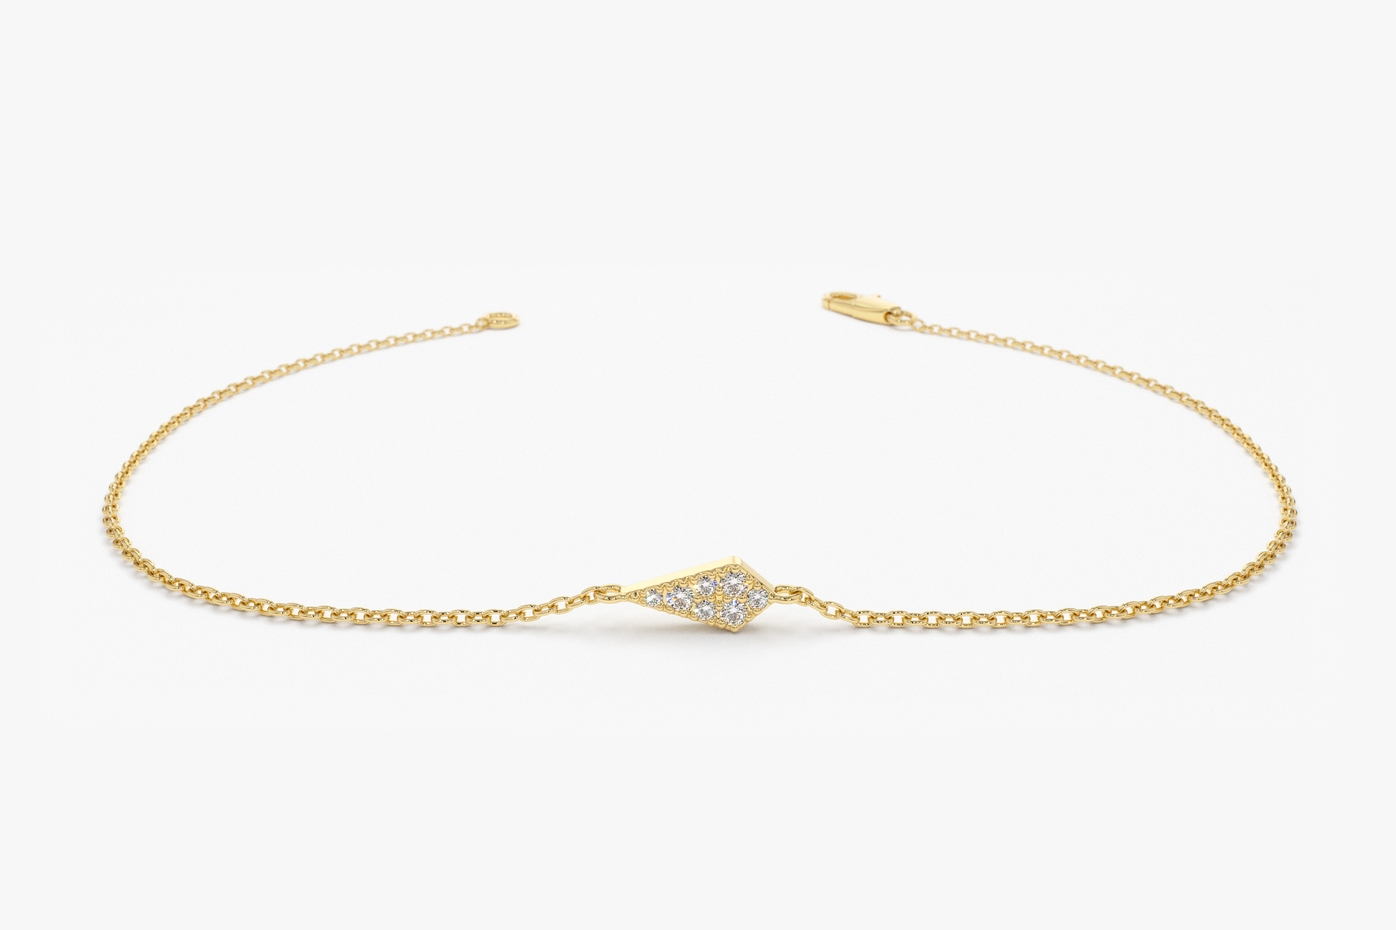 Bracelet, Yellow Gold, Kite Shape, Diamonds, Lobster Lock